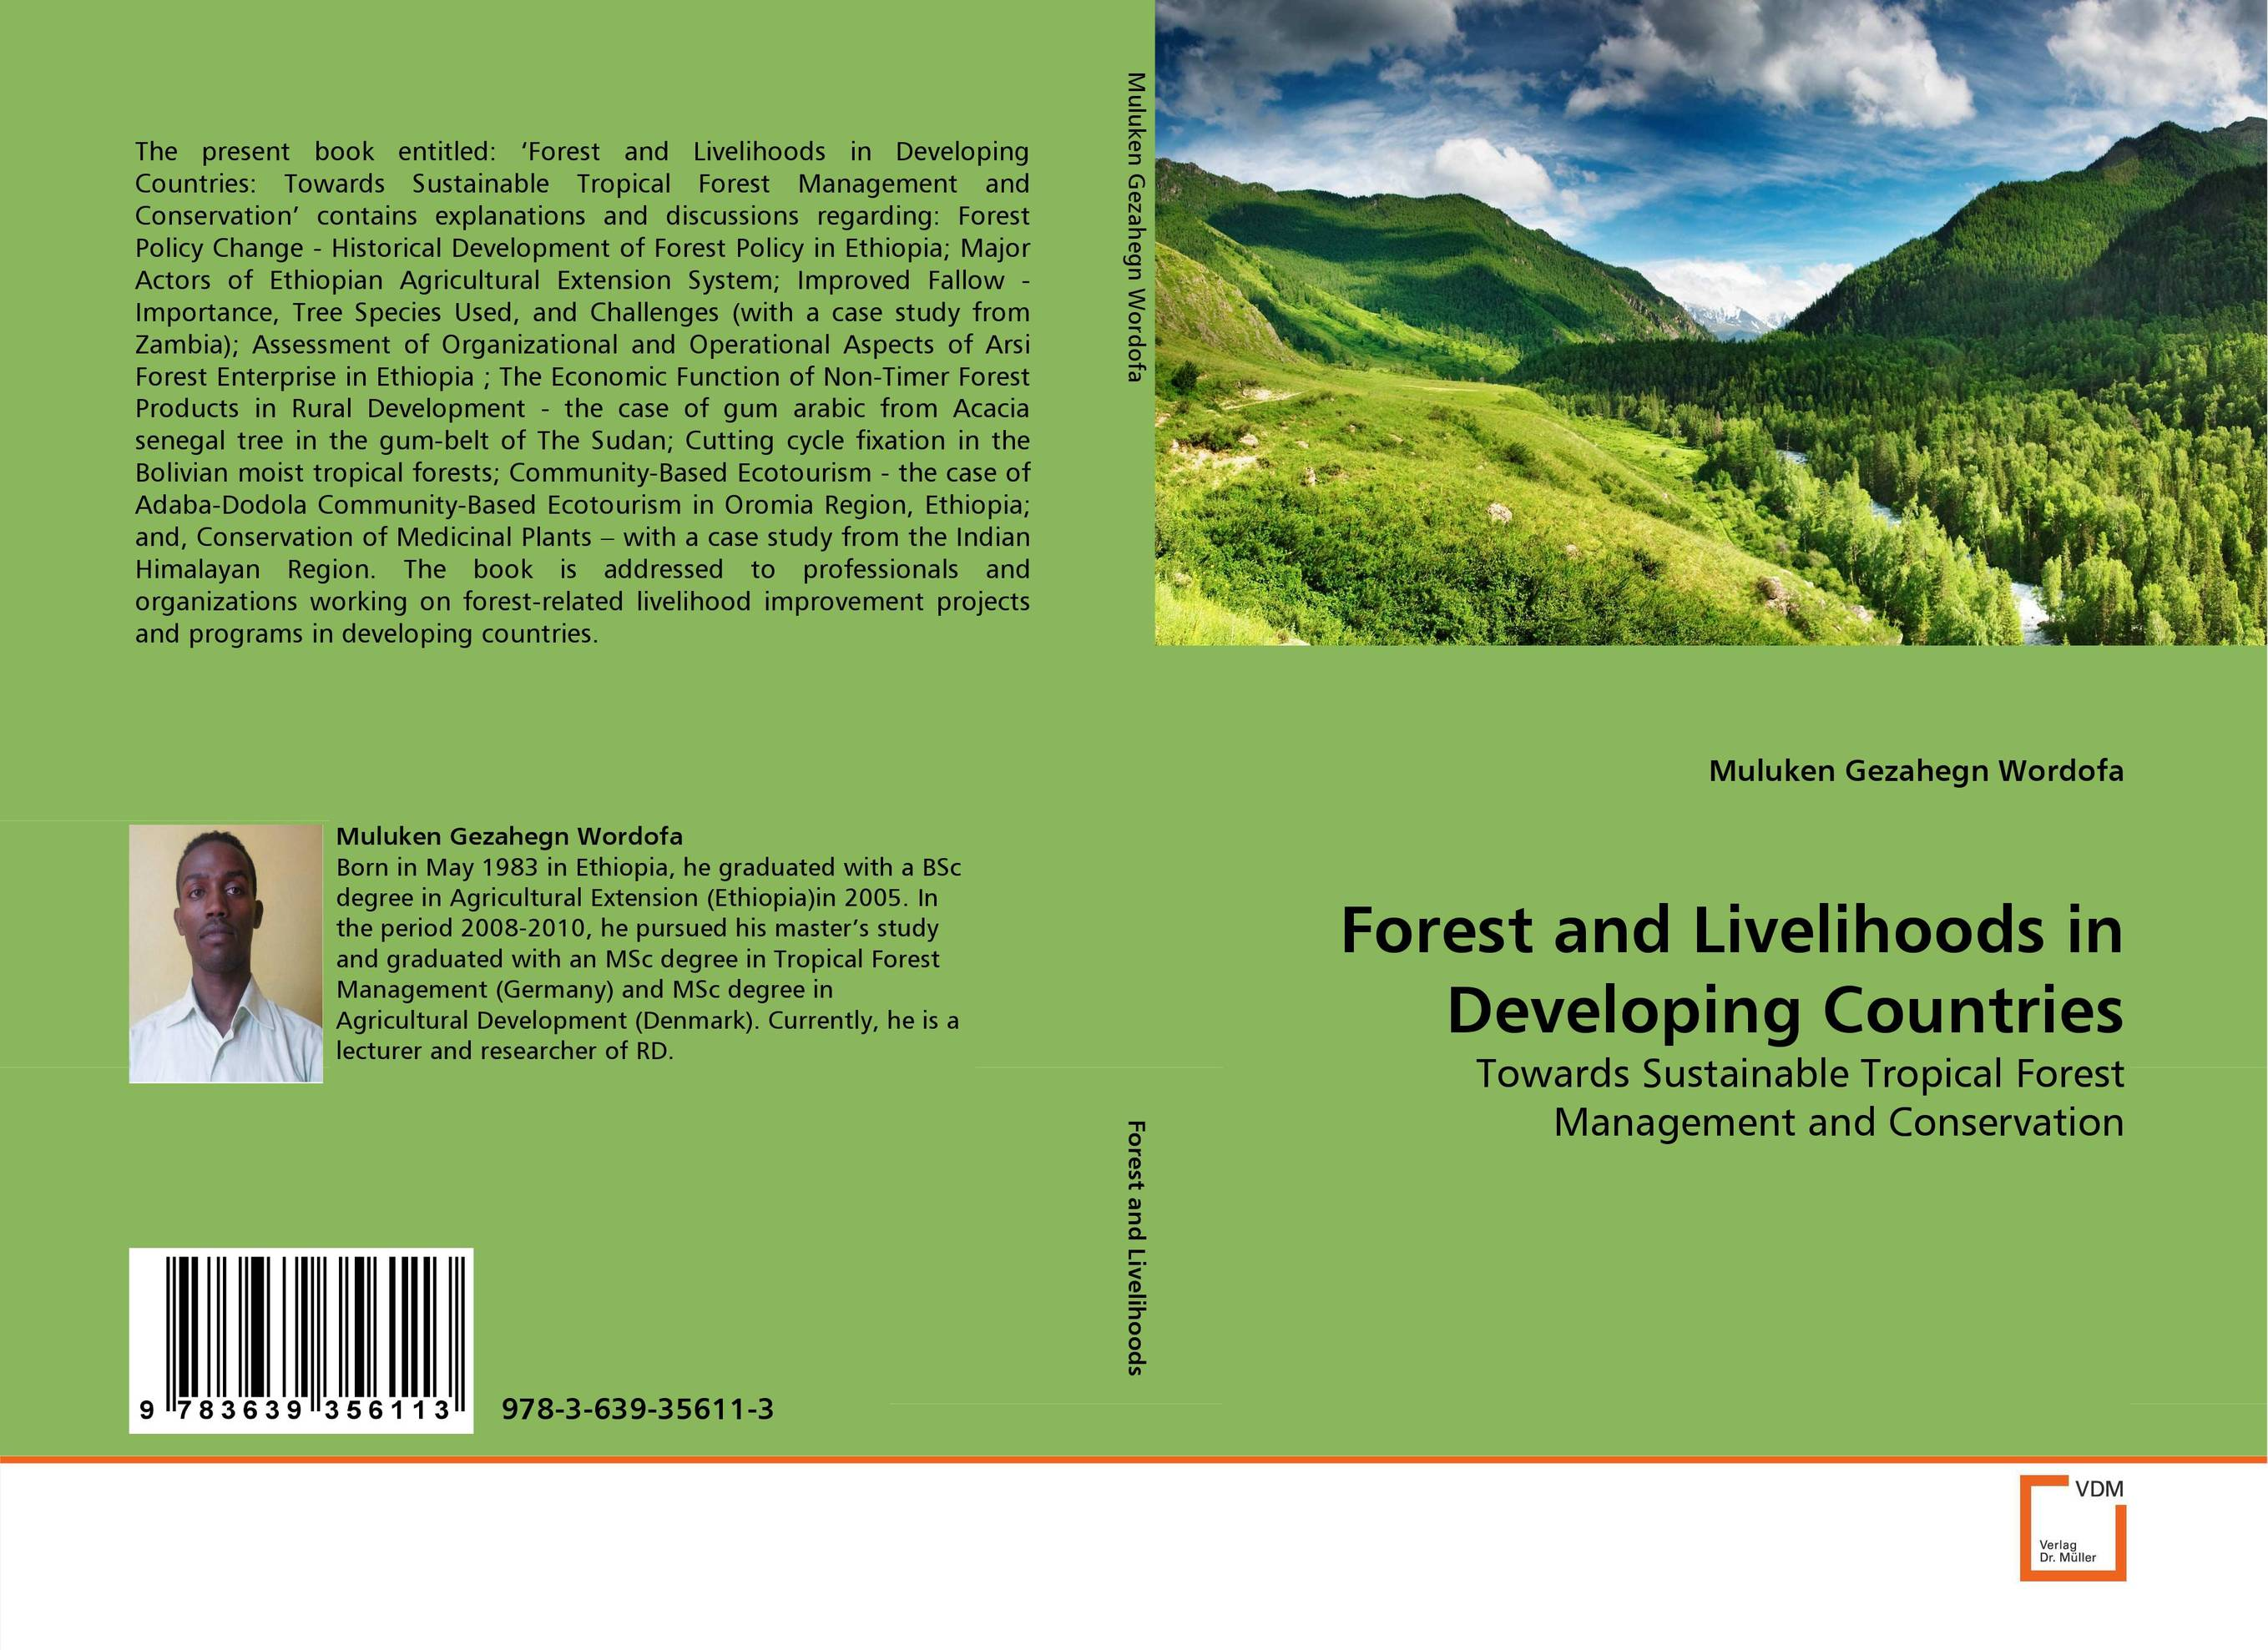 Фото Forest and Livelihoods in Developing Countries cervical cancer in amhara region in ethiopia